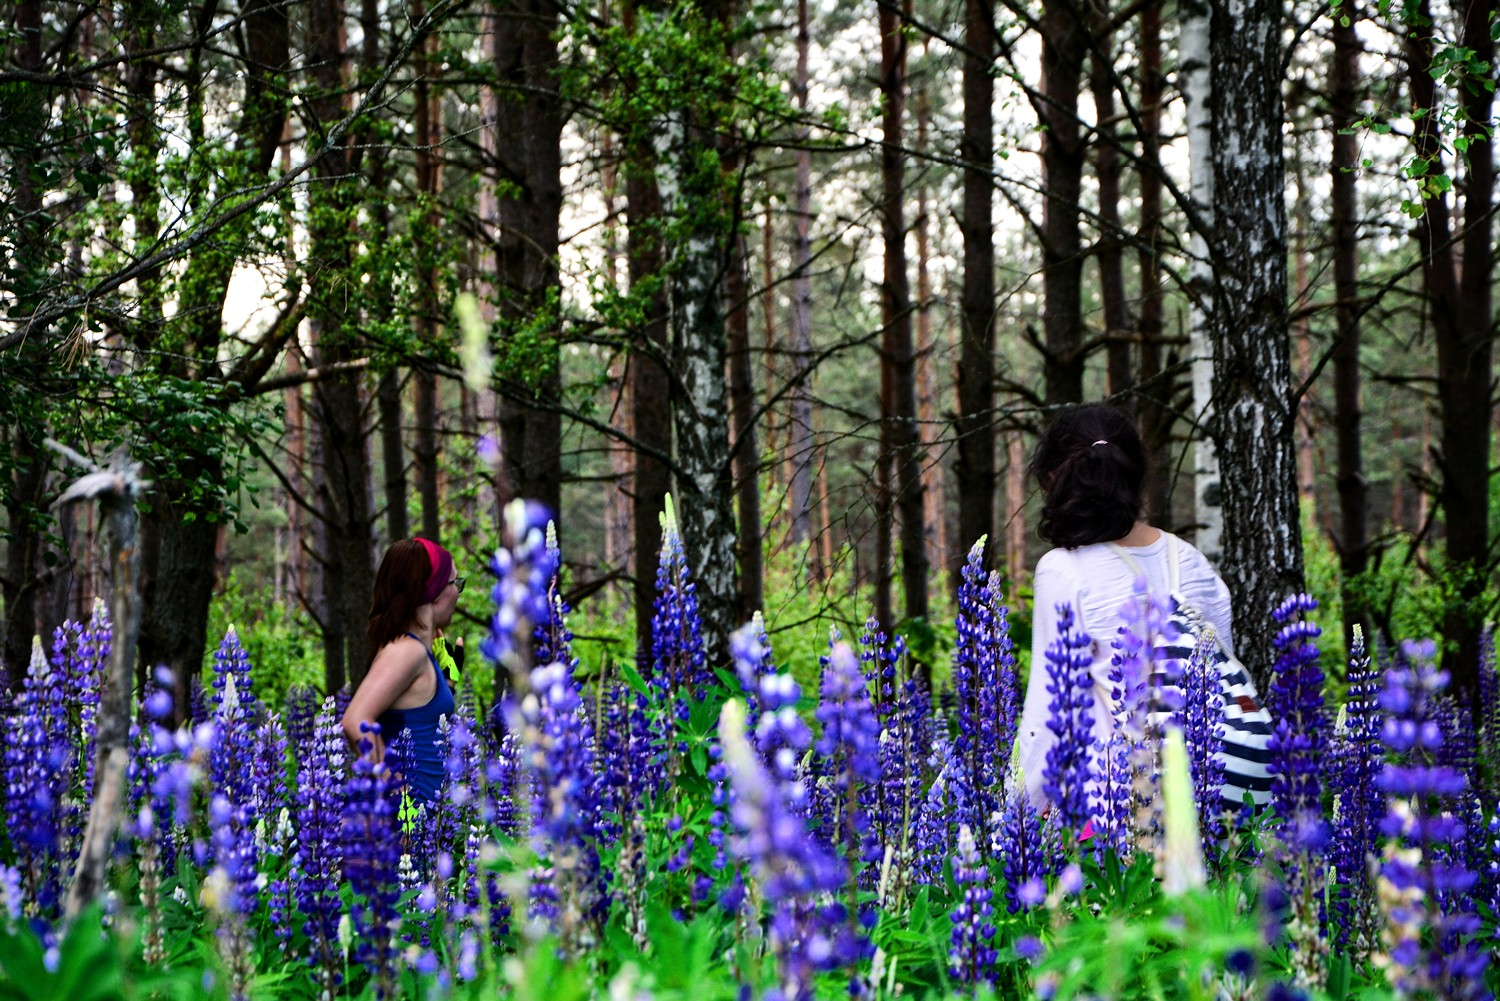 podlasie lupin girls in the field of flowers eastern poland blue flowers